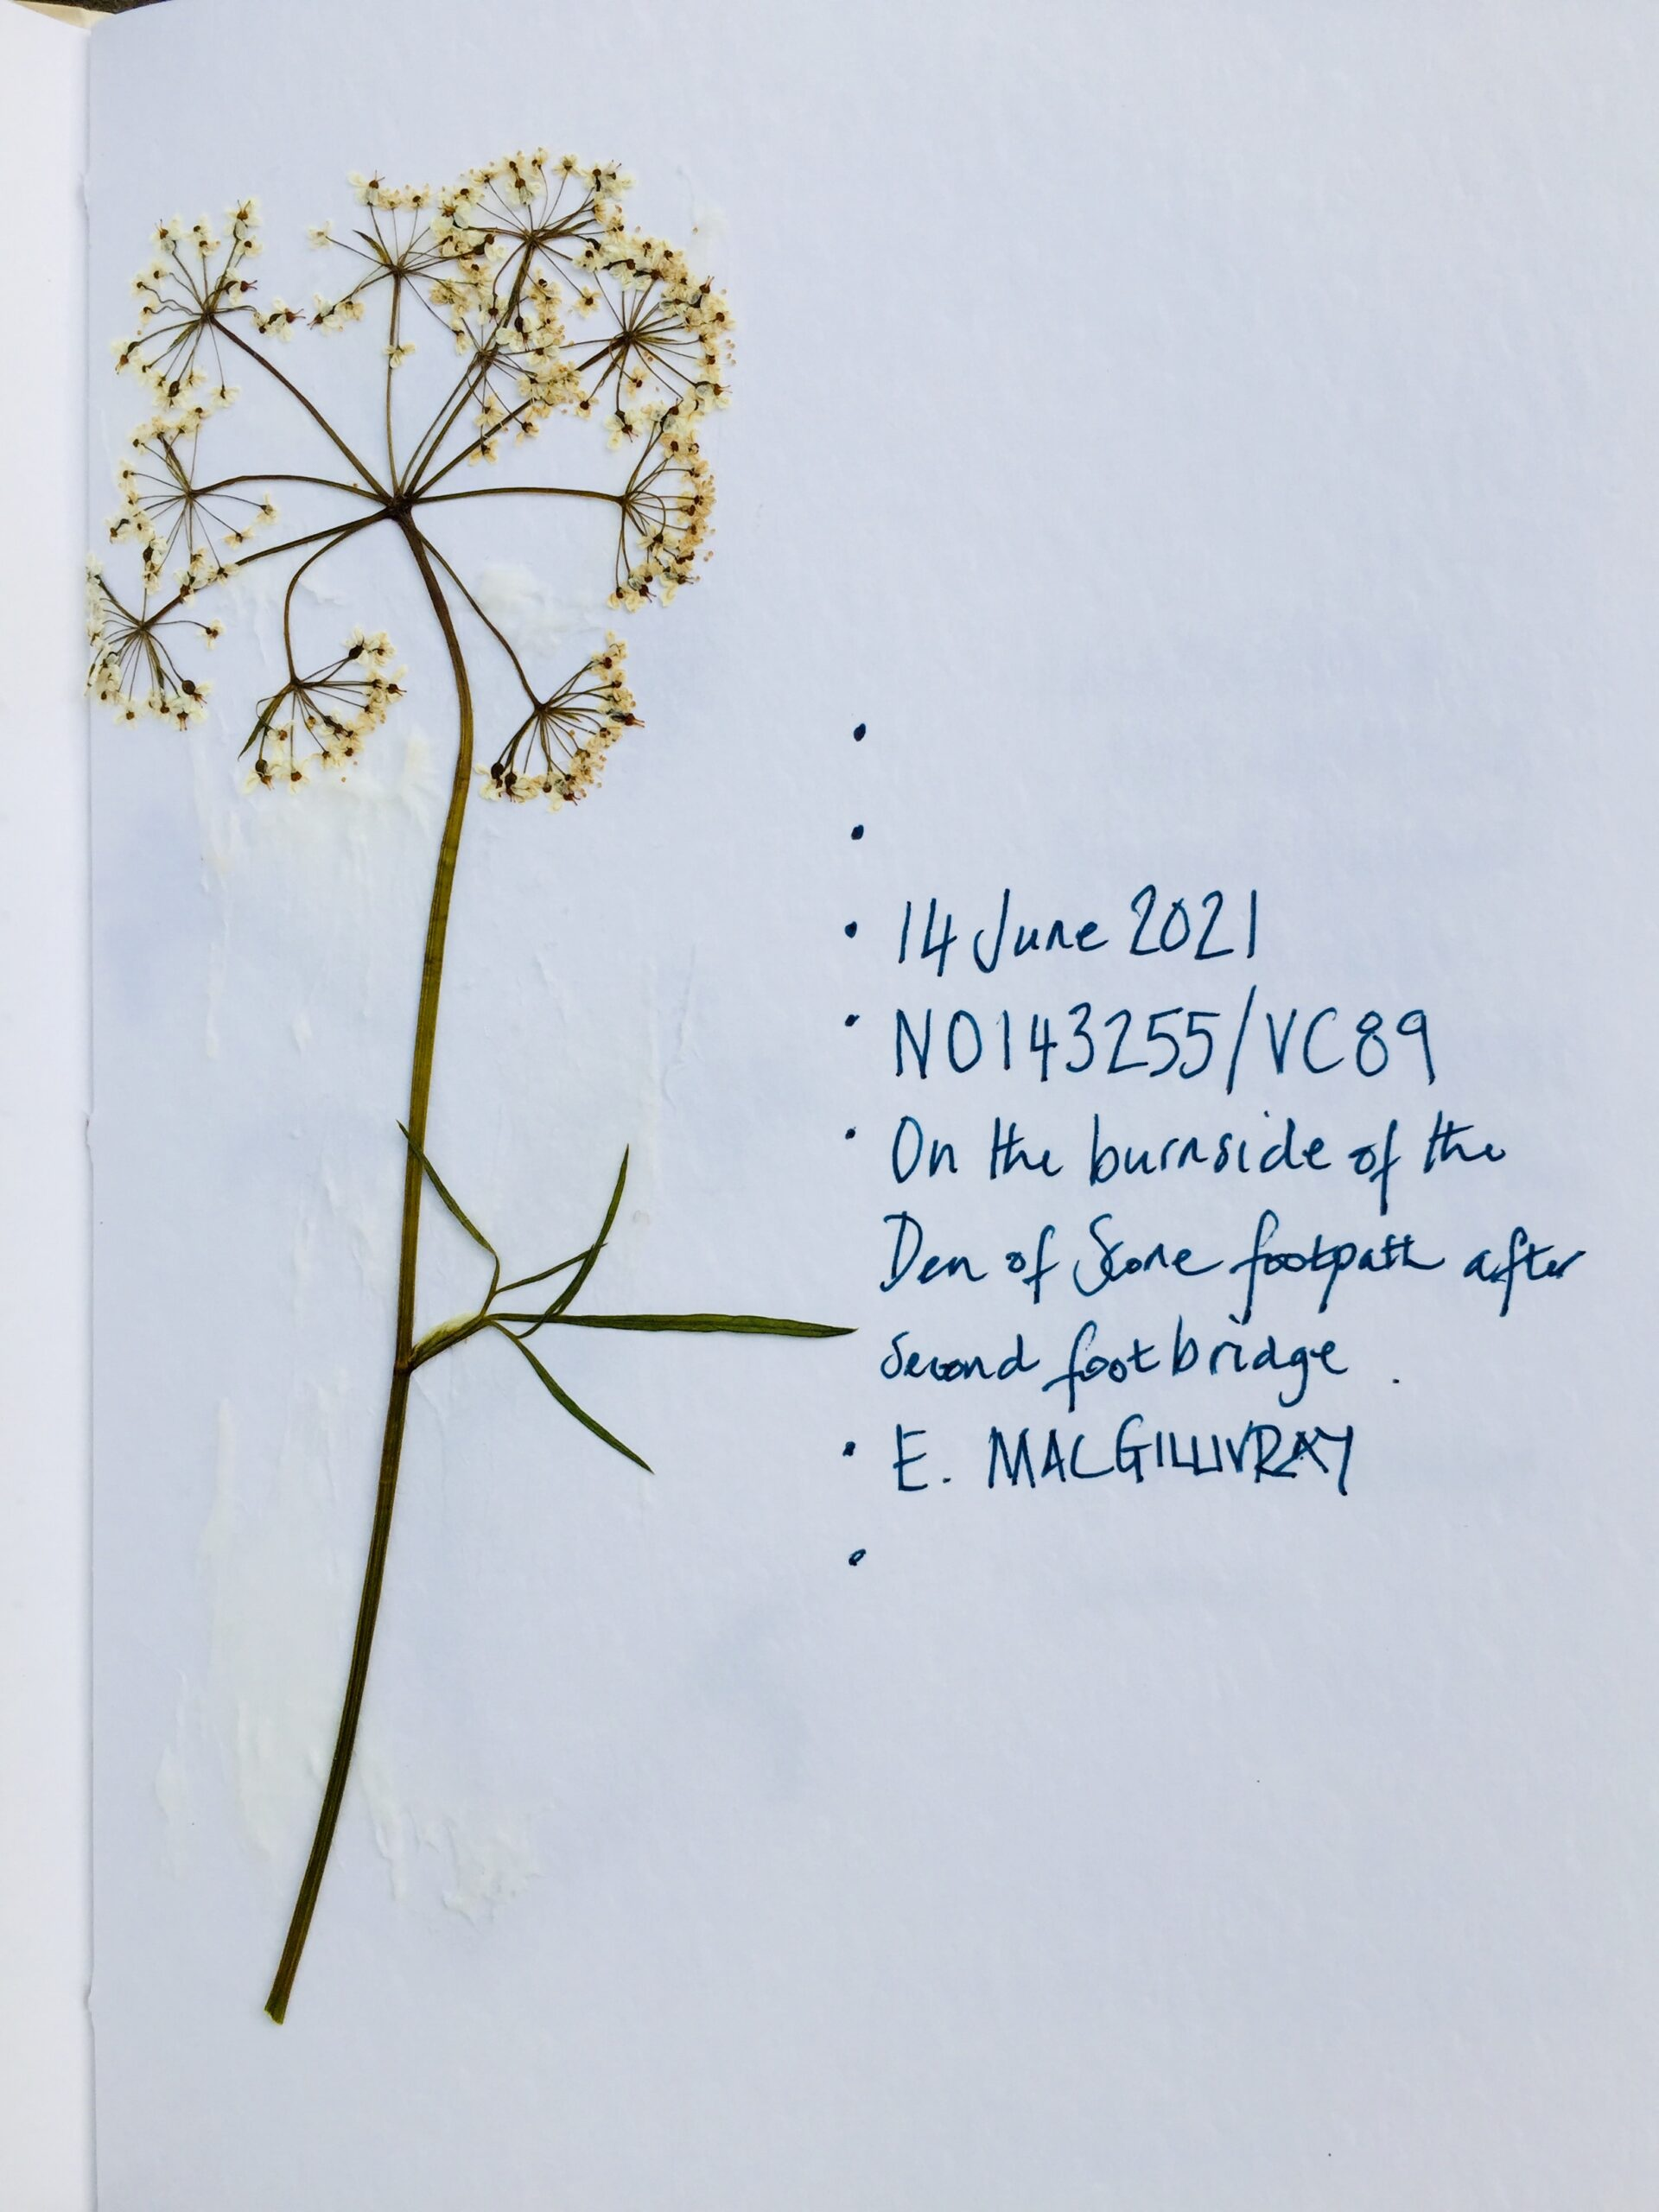 Pressed plant specimen, 'Unidentified', collected by Elaine MacGillivray at the Den of Scone, June 2021.